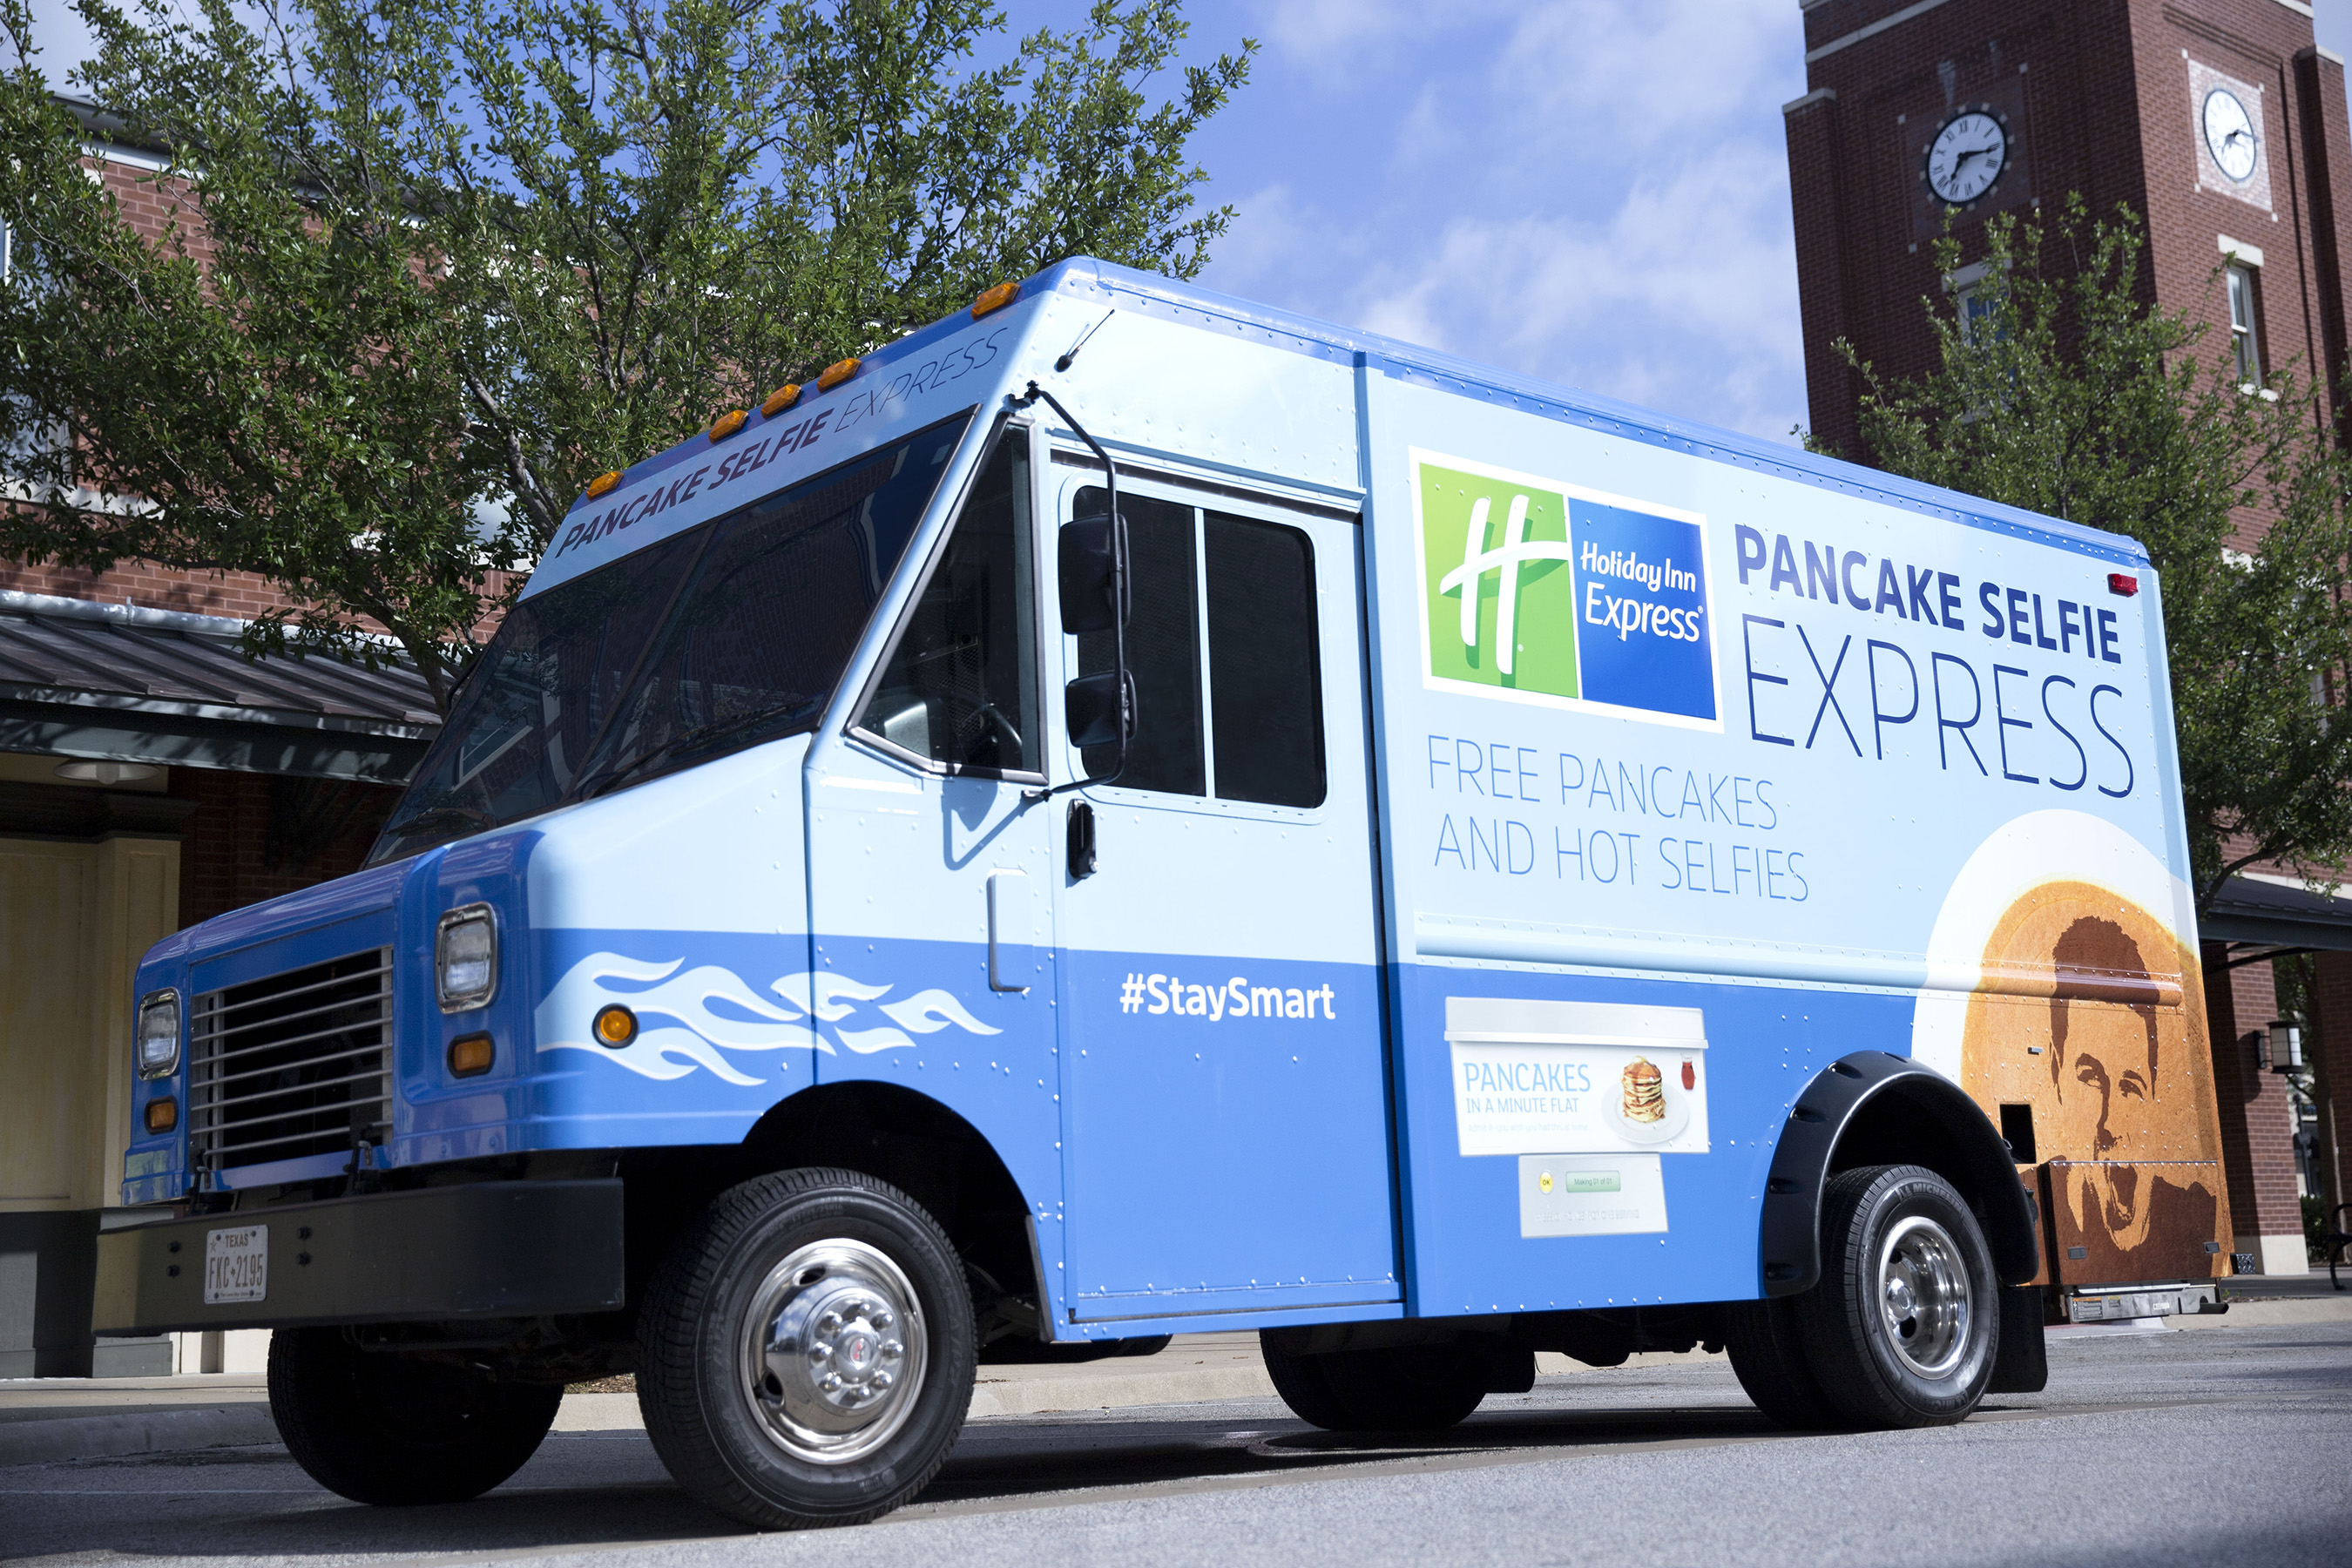 The Holiday Inn Express® brand is getting football fans game ready with the latest Pancake Selfie Express mobile breakfast tour, hitting the road in August.